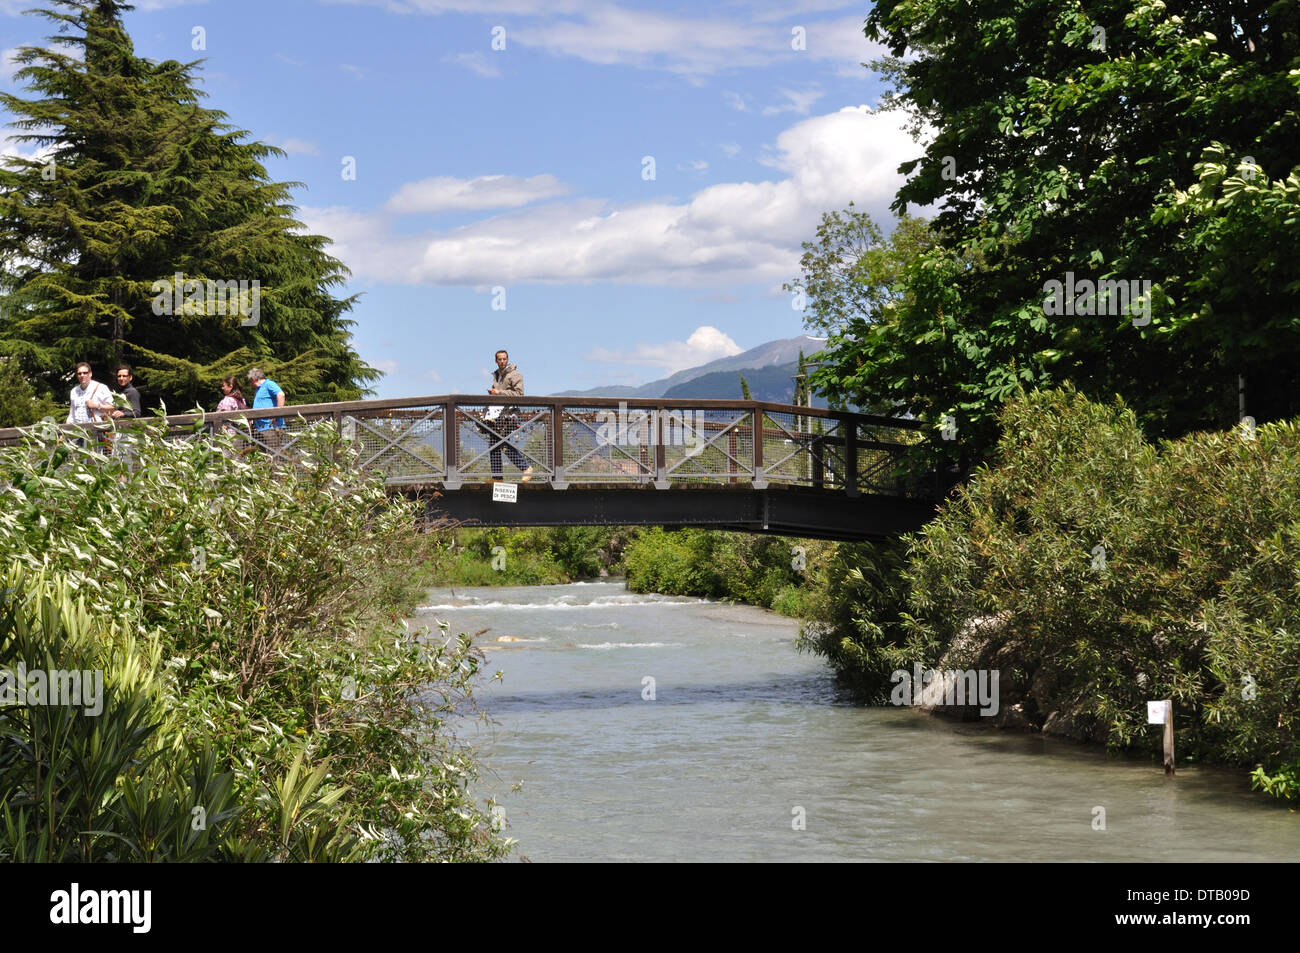 Footbridge over a river flowing into Lake Garda at Riva del Garda, Italy Stock Photo